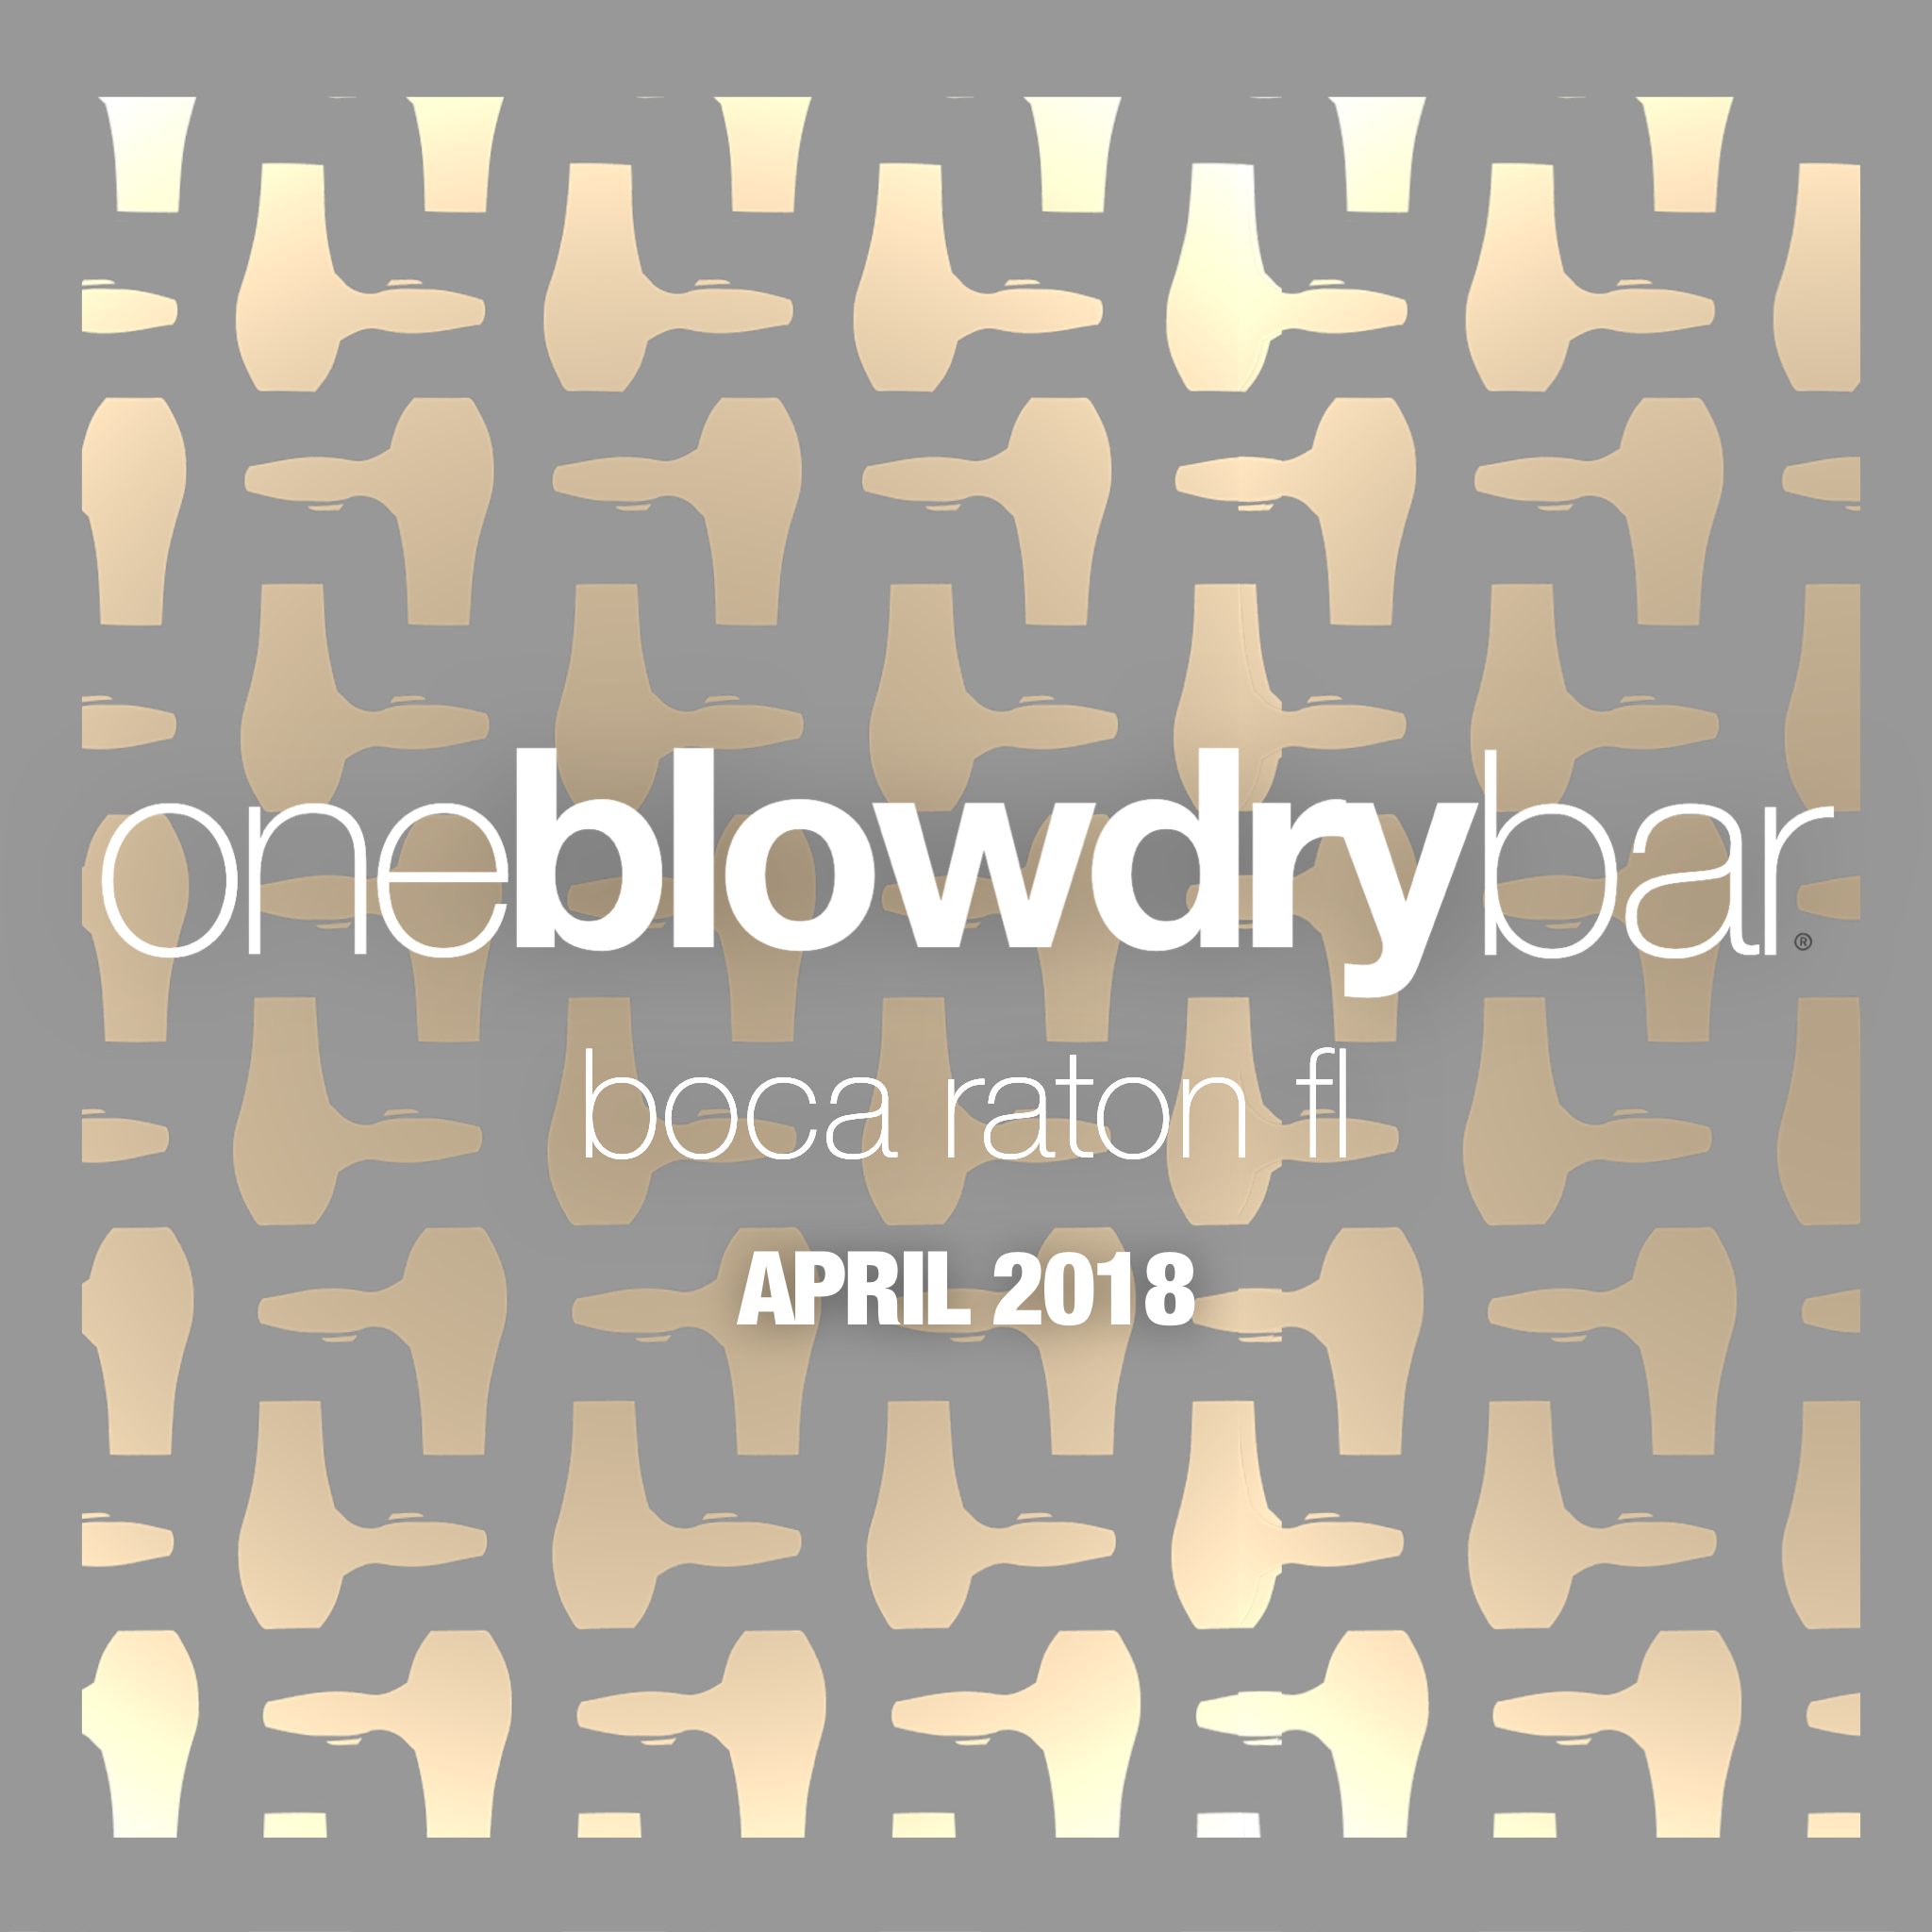 oneblowdrybar in boca raton fl is the most luxurious blow dry bar in Florida